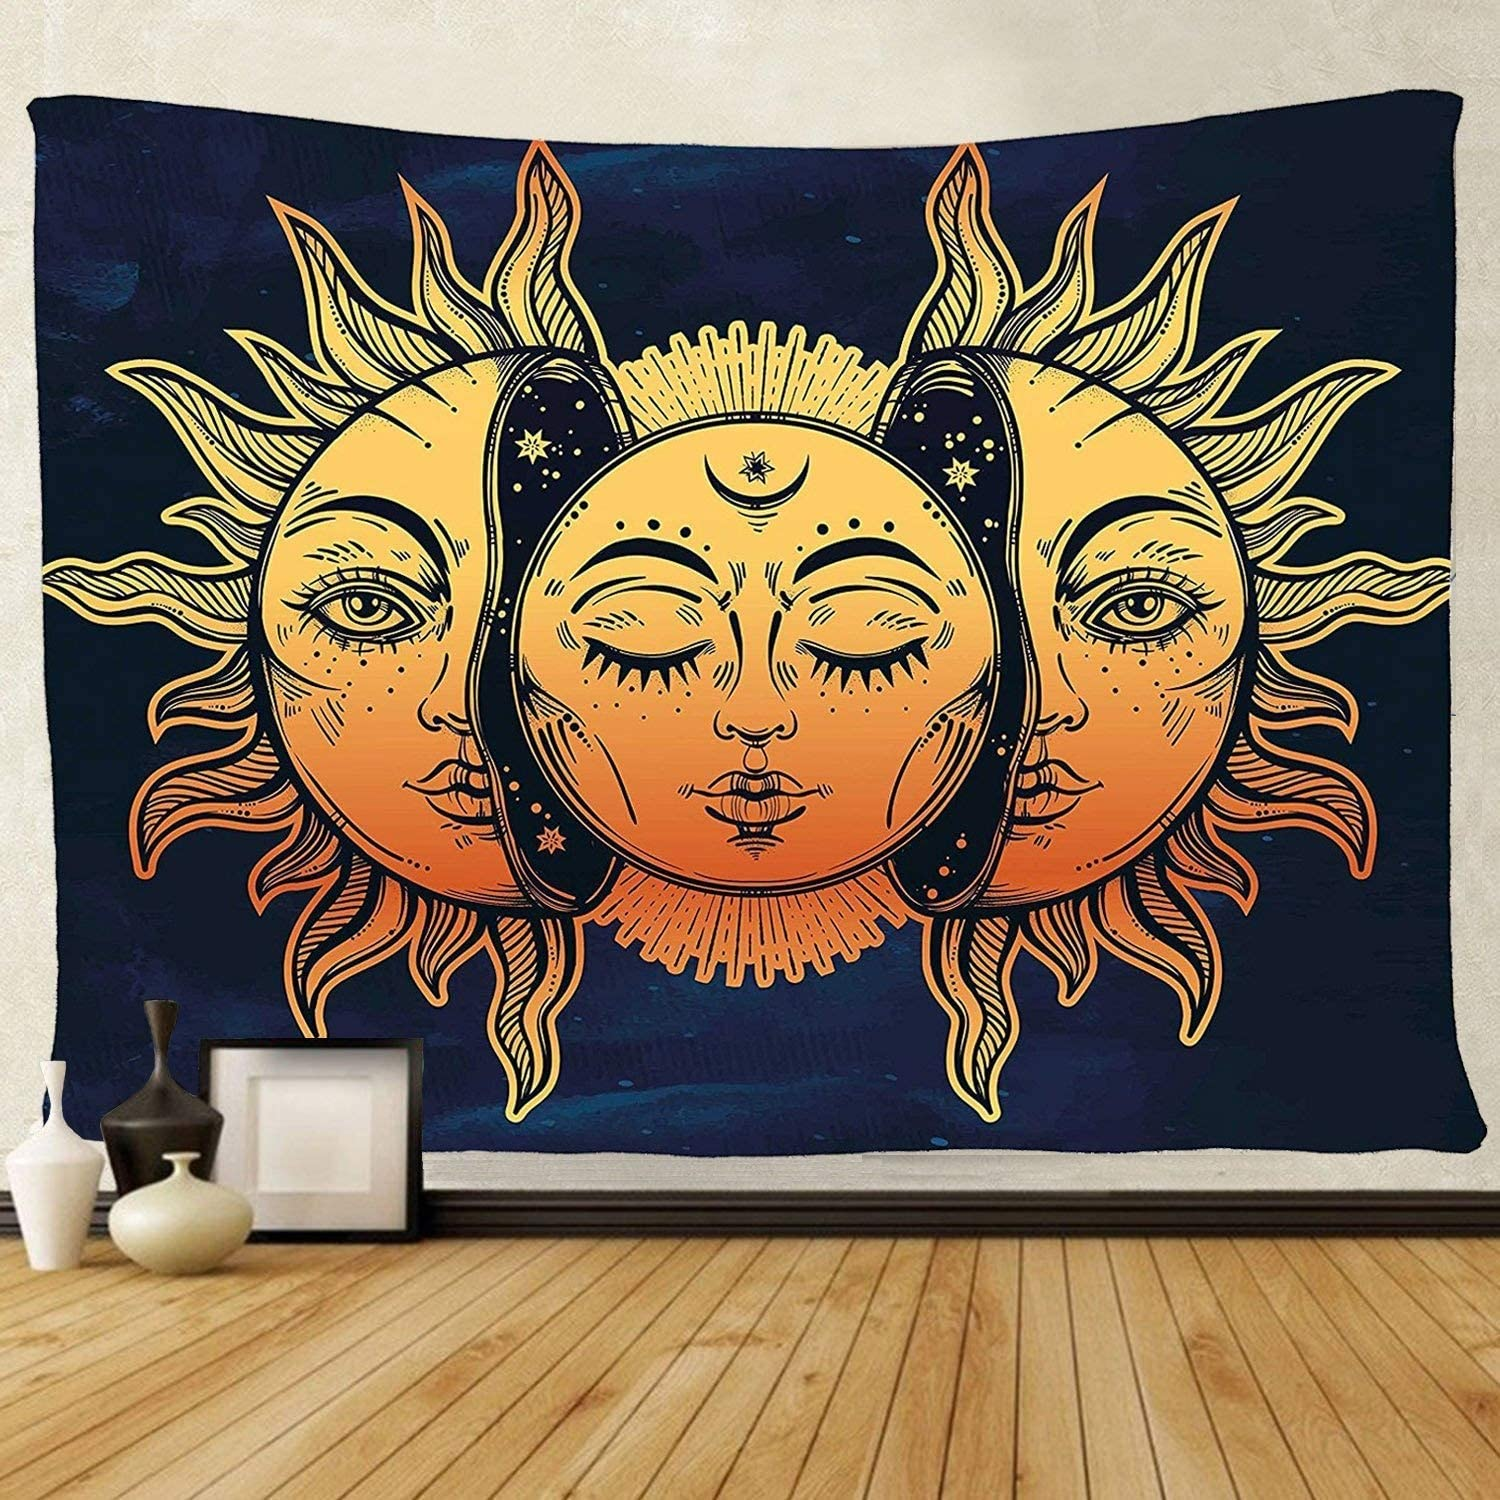 Amazon Com Tenaly Tapestry Wall Hanging Sun And Moon Psychedelic Small Wall Tapestry With Art Chakra Home Decorations For Bedroom Dorm Decor In 51x60 Inches Home Kitchen